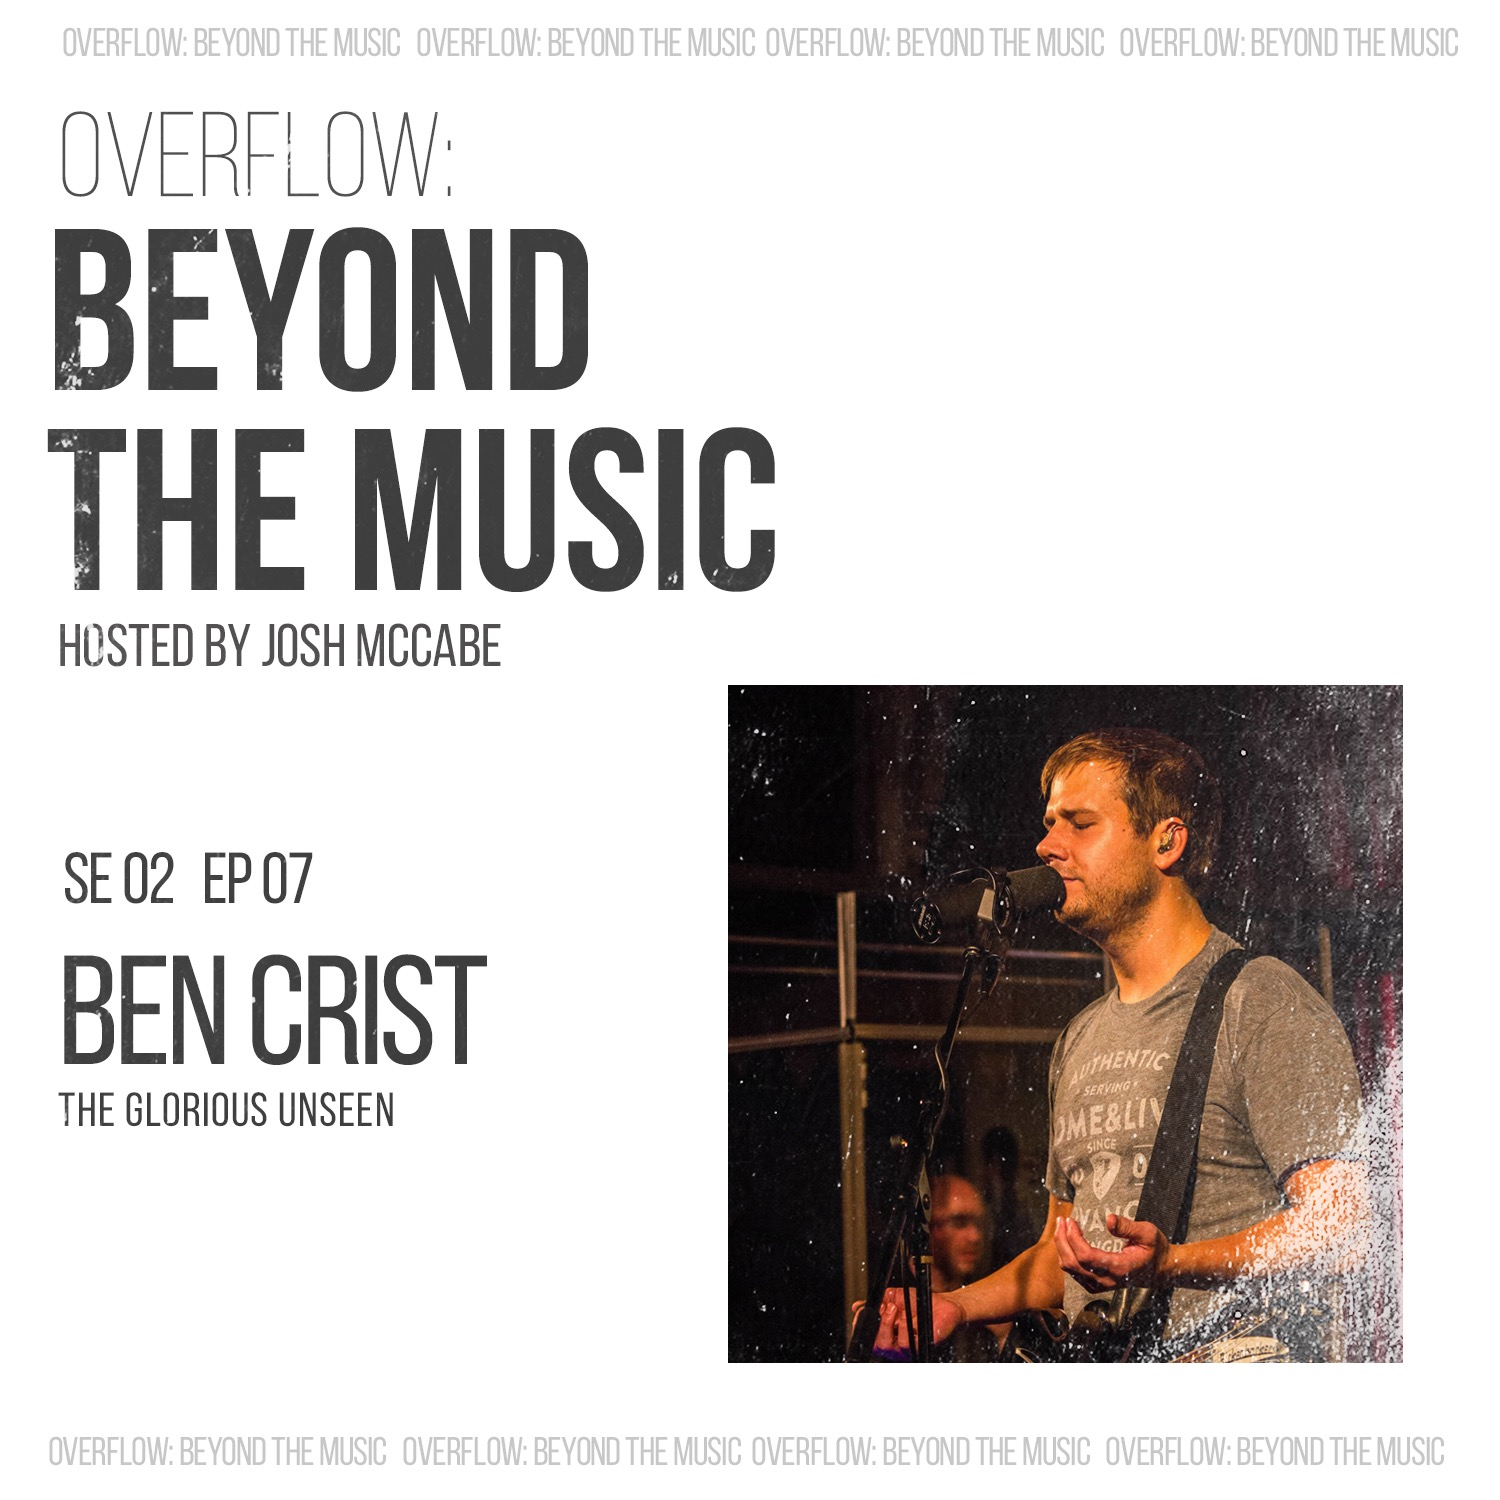 Honest Worship with Ben Crist (The Glorious Unseen)